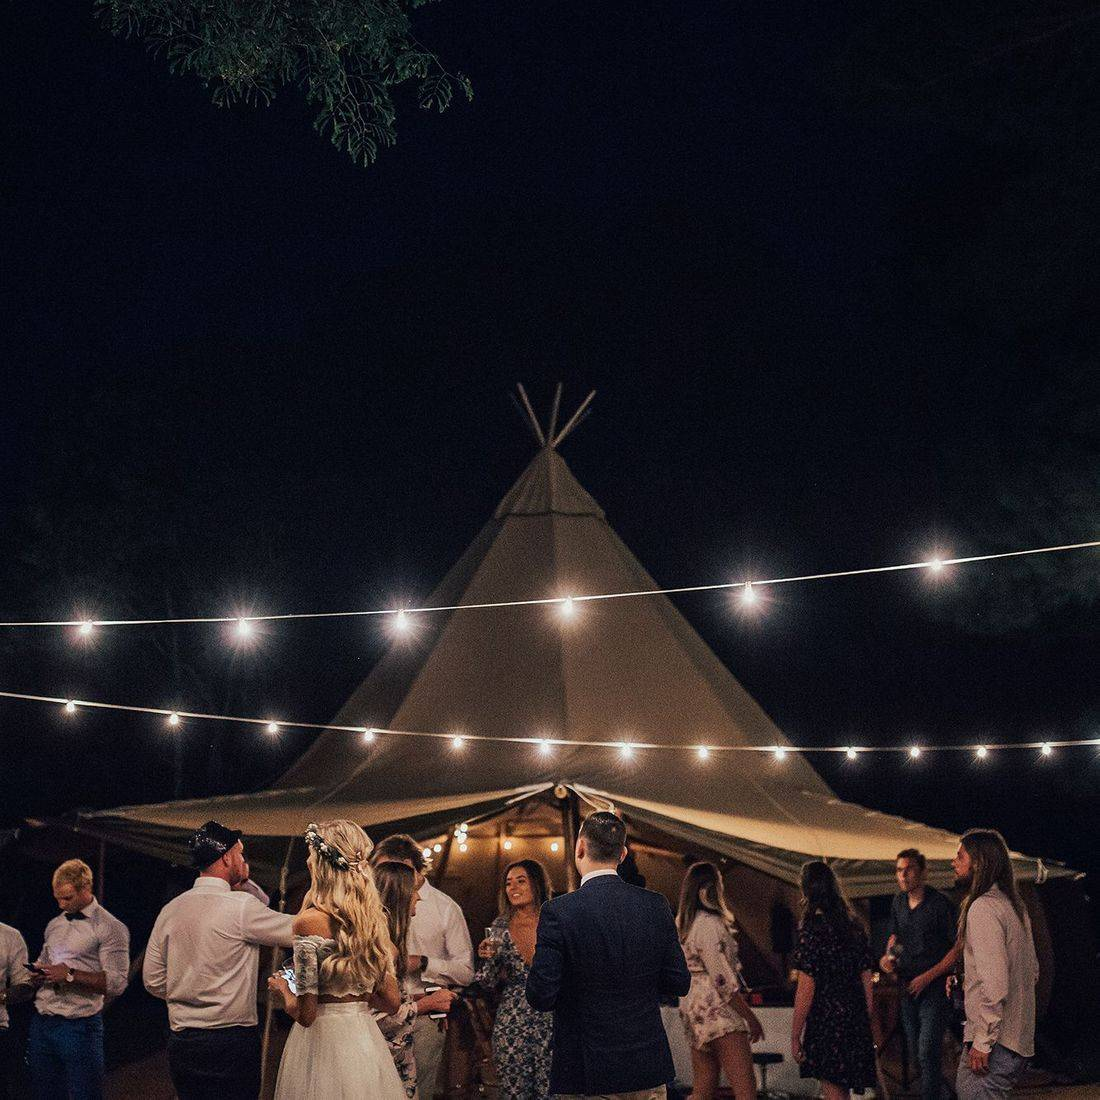 Tipi setting for dining and dancing